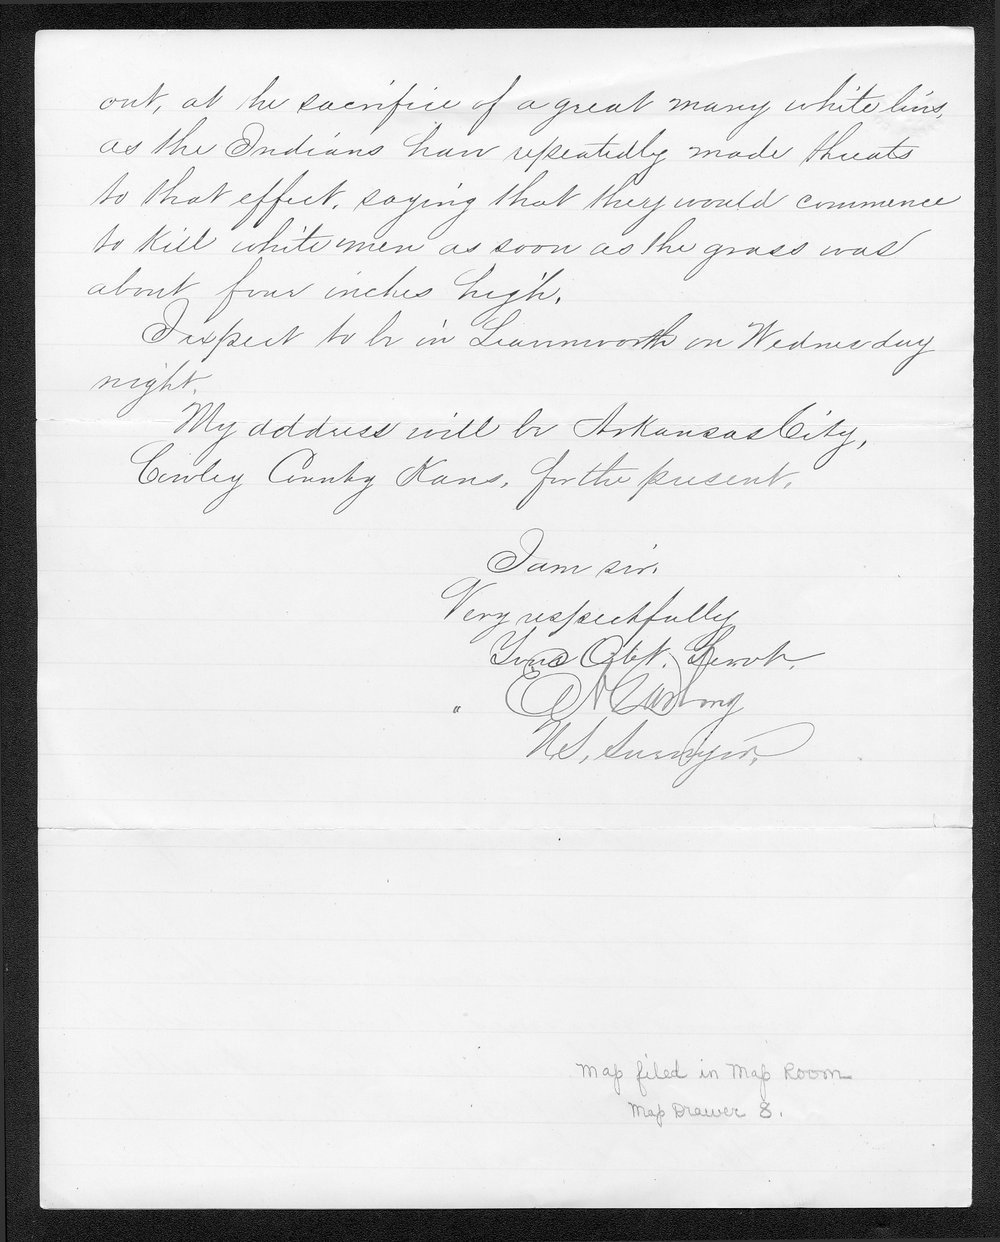 Governor Thomas Osborn Indian affairs received correspondence - 8